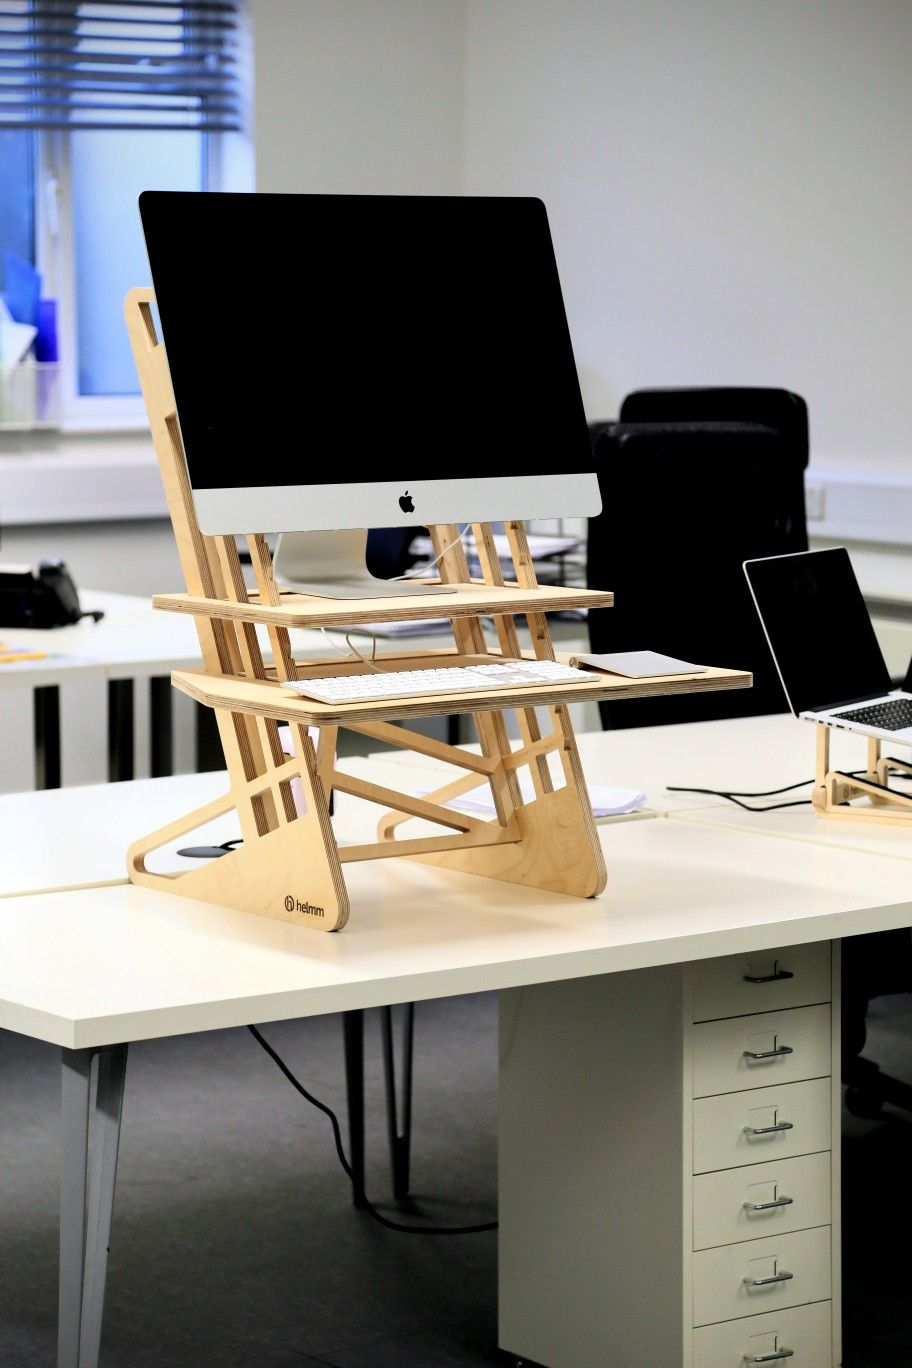 Standing Desk Converter By Helmm Co Adjustable Height Cnc Fabricated In The Uk From Sustainable Birch Pl In 2020 With Images Standing Desk Furniture Design Wooden Standing Desk